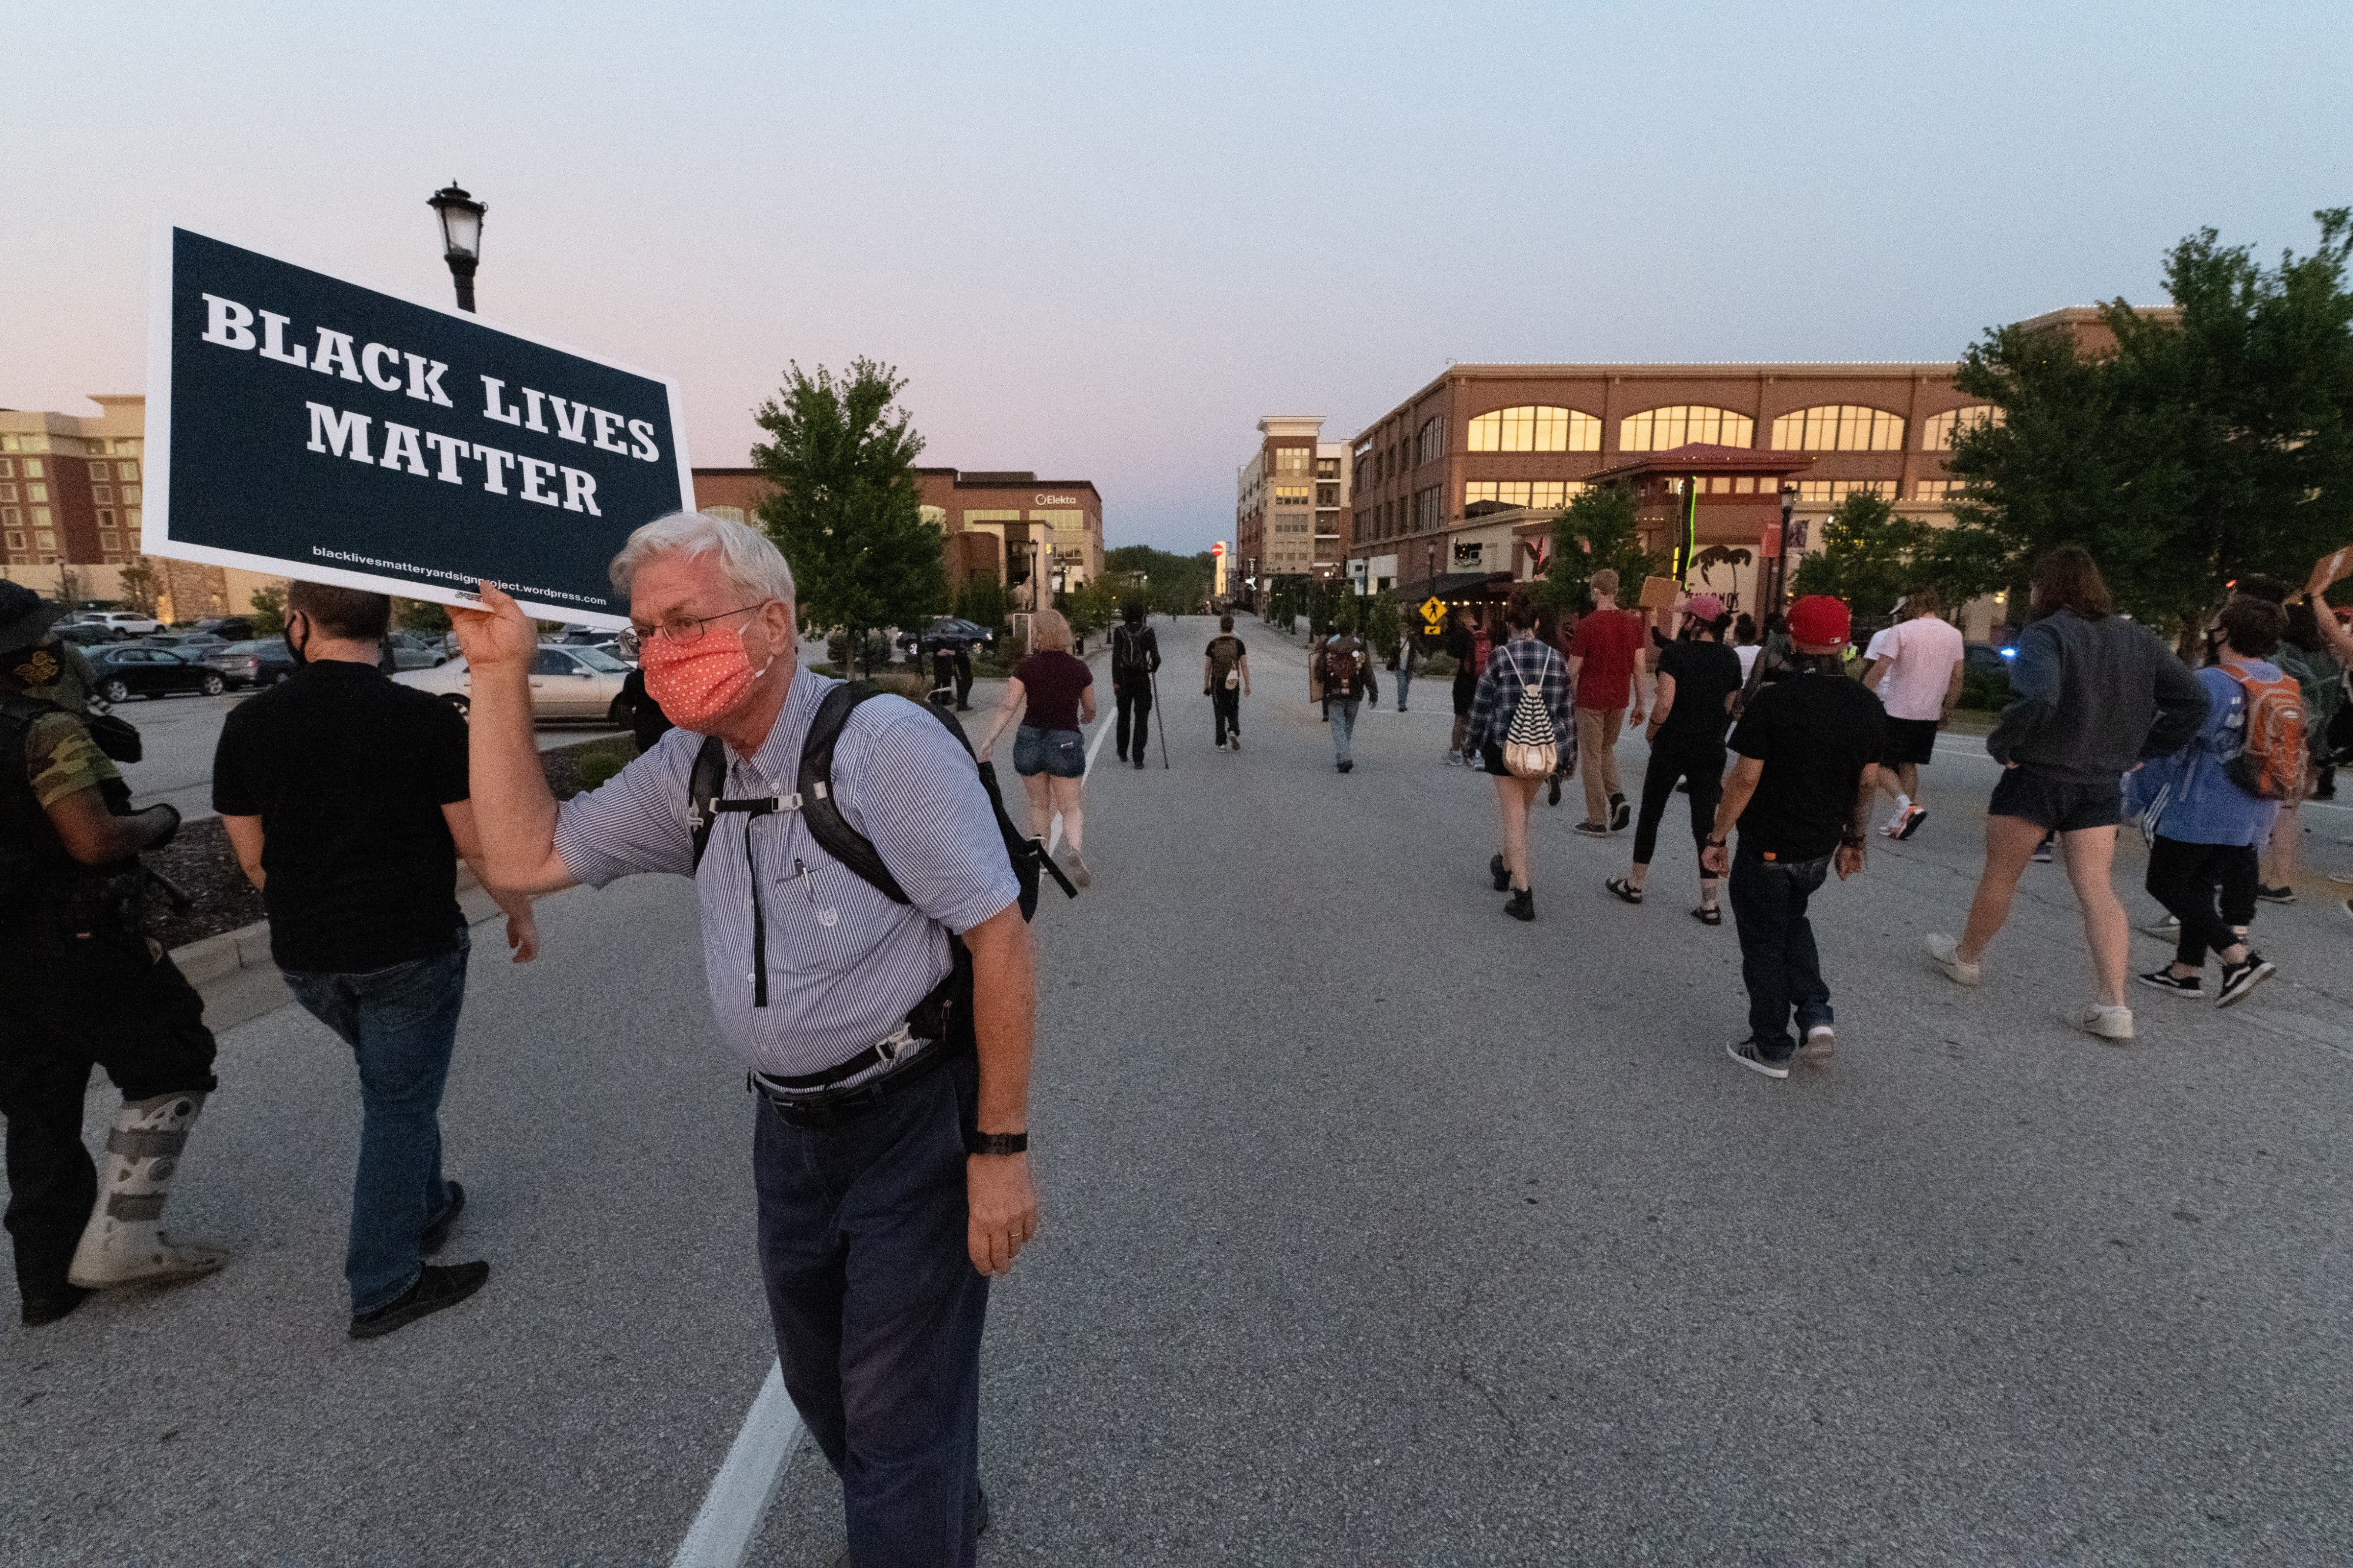 A man holds a Black Lives Matter sign as protesters march in St. Charles, MO.